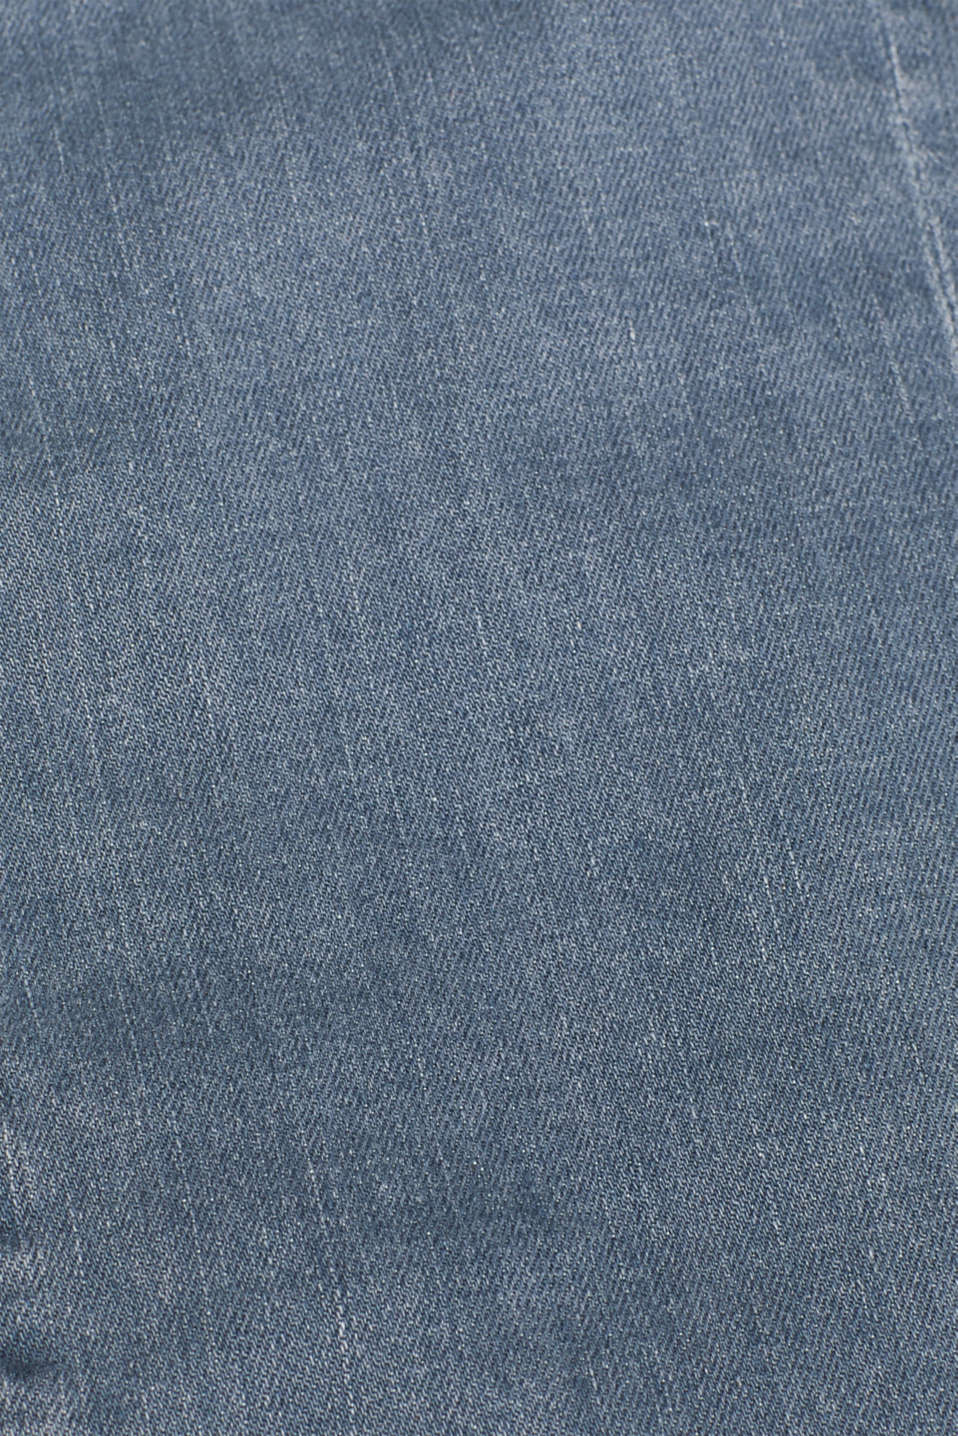 Jeans with a button placket and patch pockets, GREY MEDIUM WASH, detail image number 4